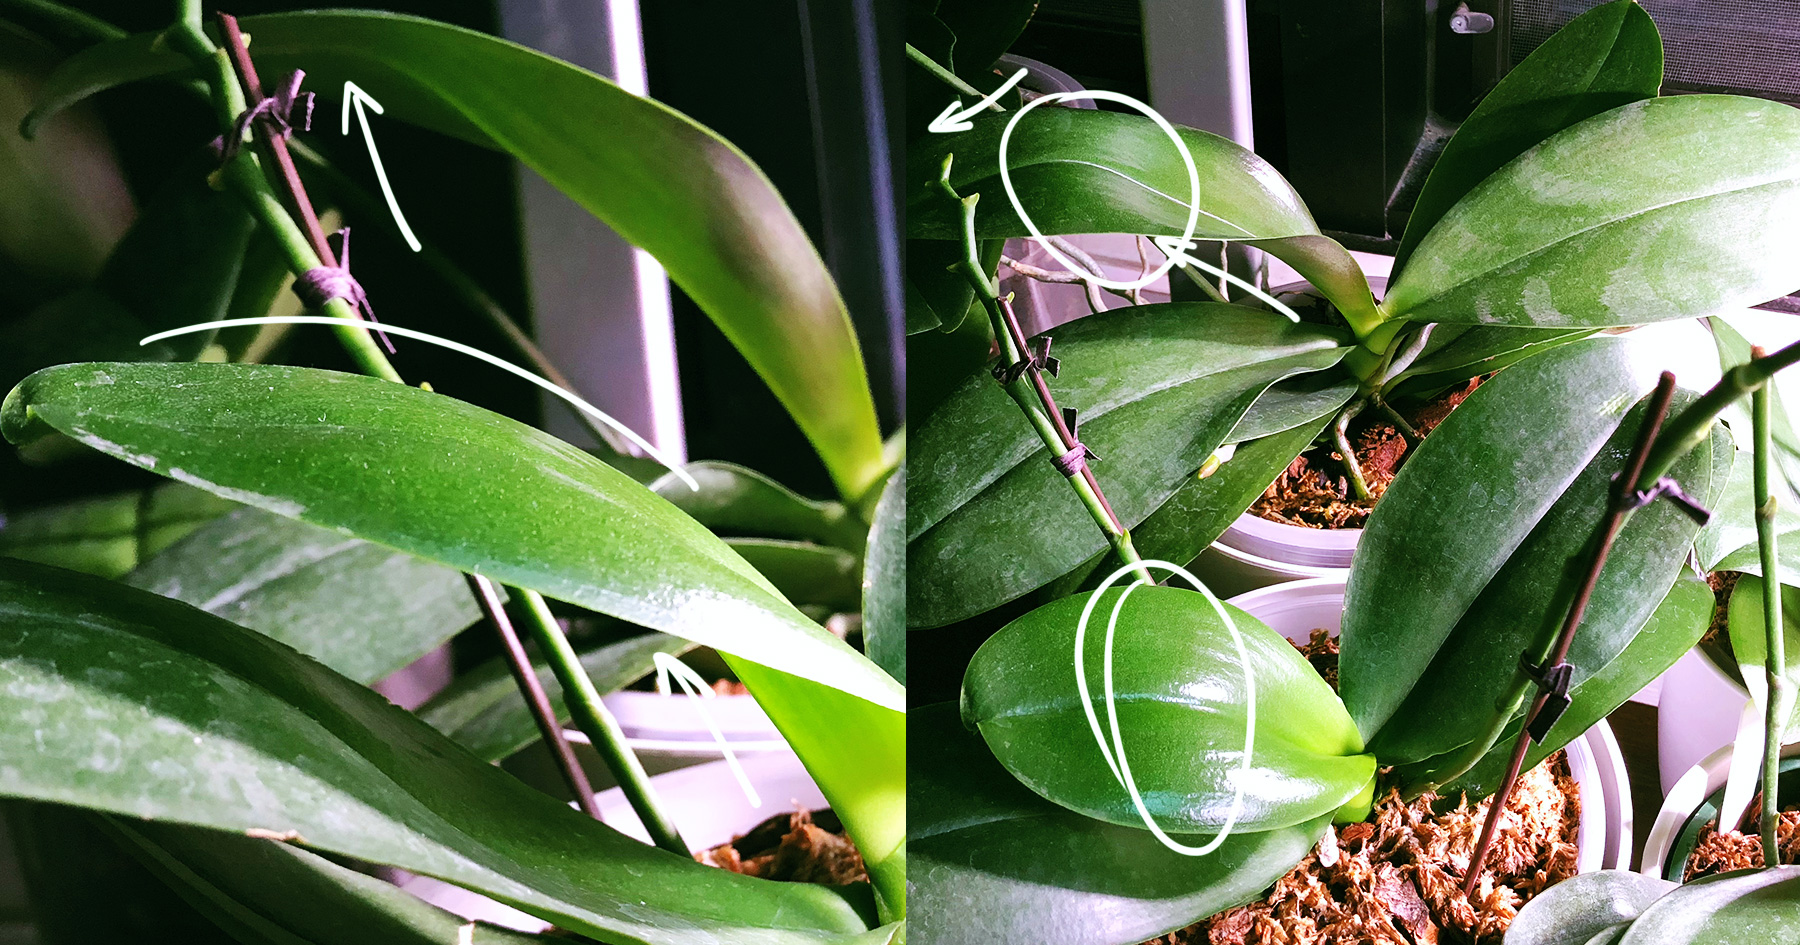 Flimsy Floppy Thin Phalaenopsis Leaves What Gives Here But Not